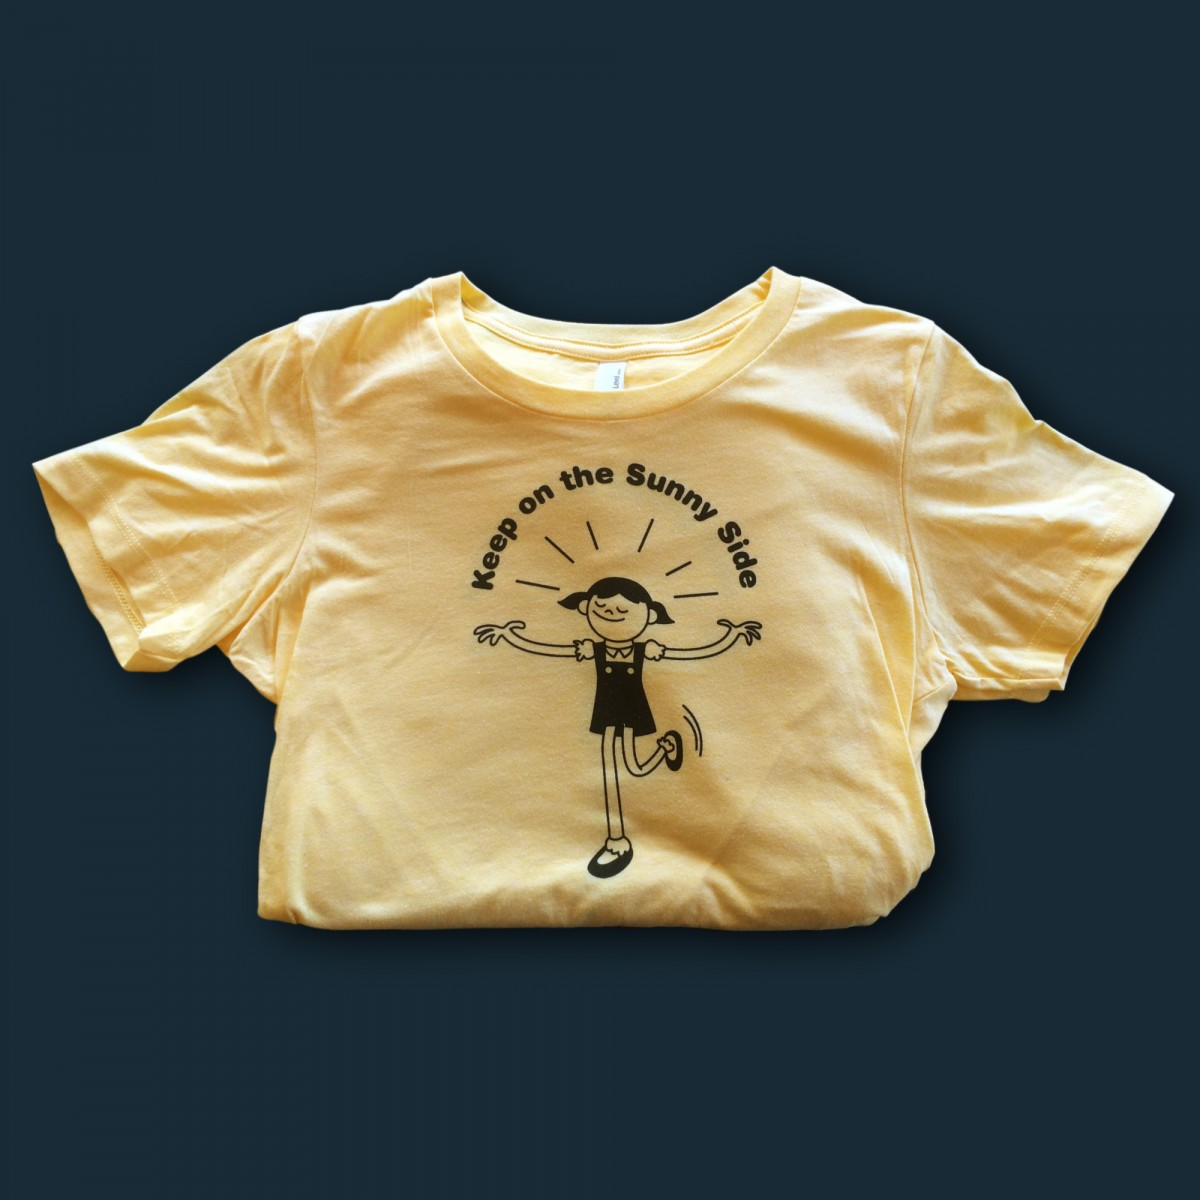 Print now - Riot later ● Women T-Shirt Keep on the sunny side